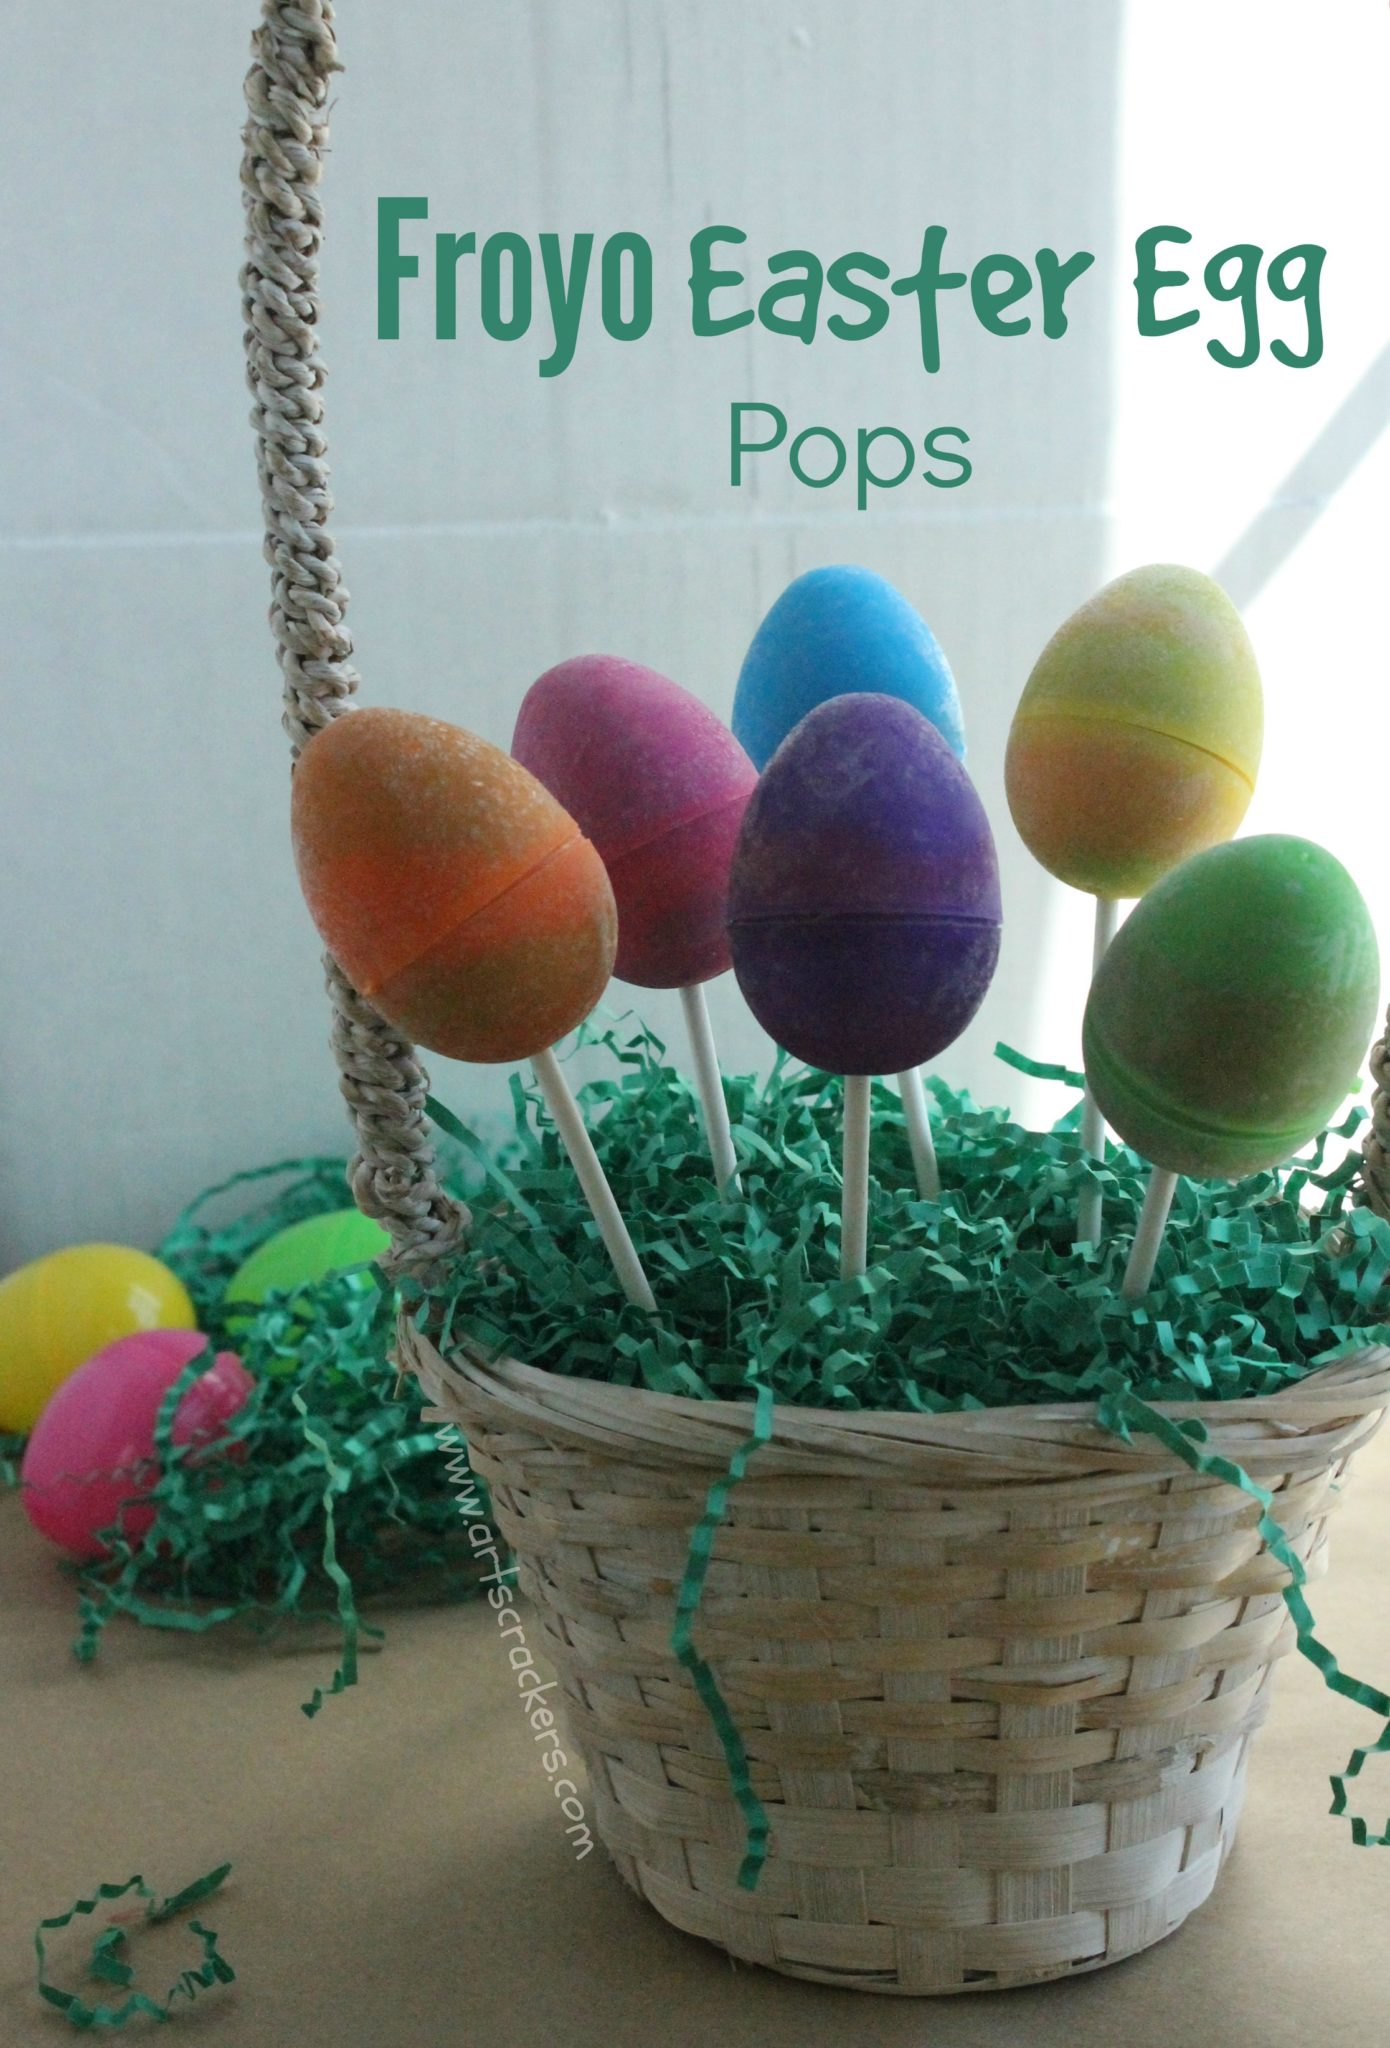 frozen yogurt easter egg pops in a basket